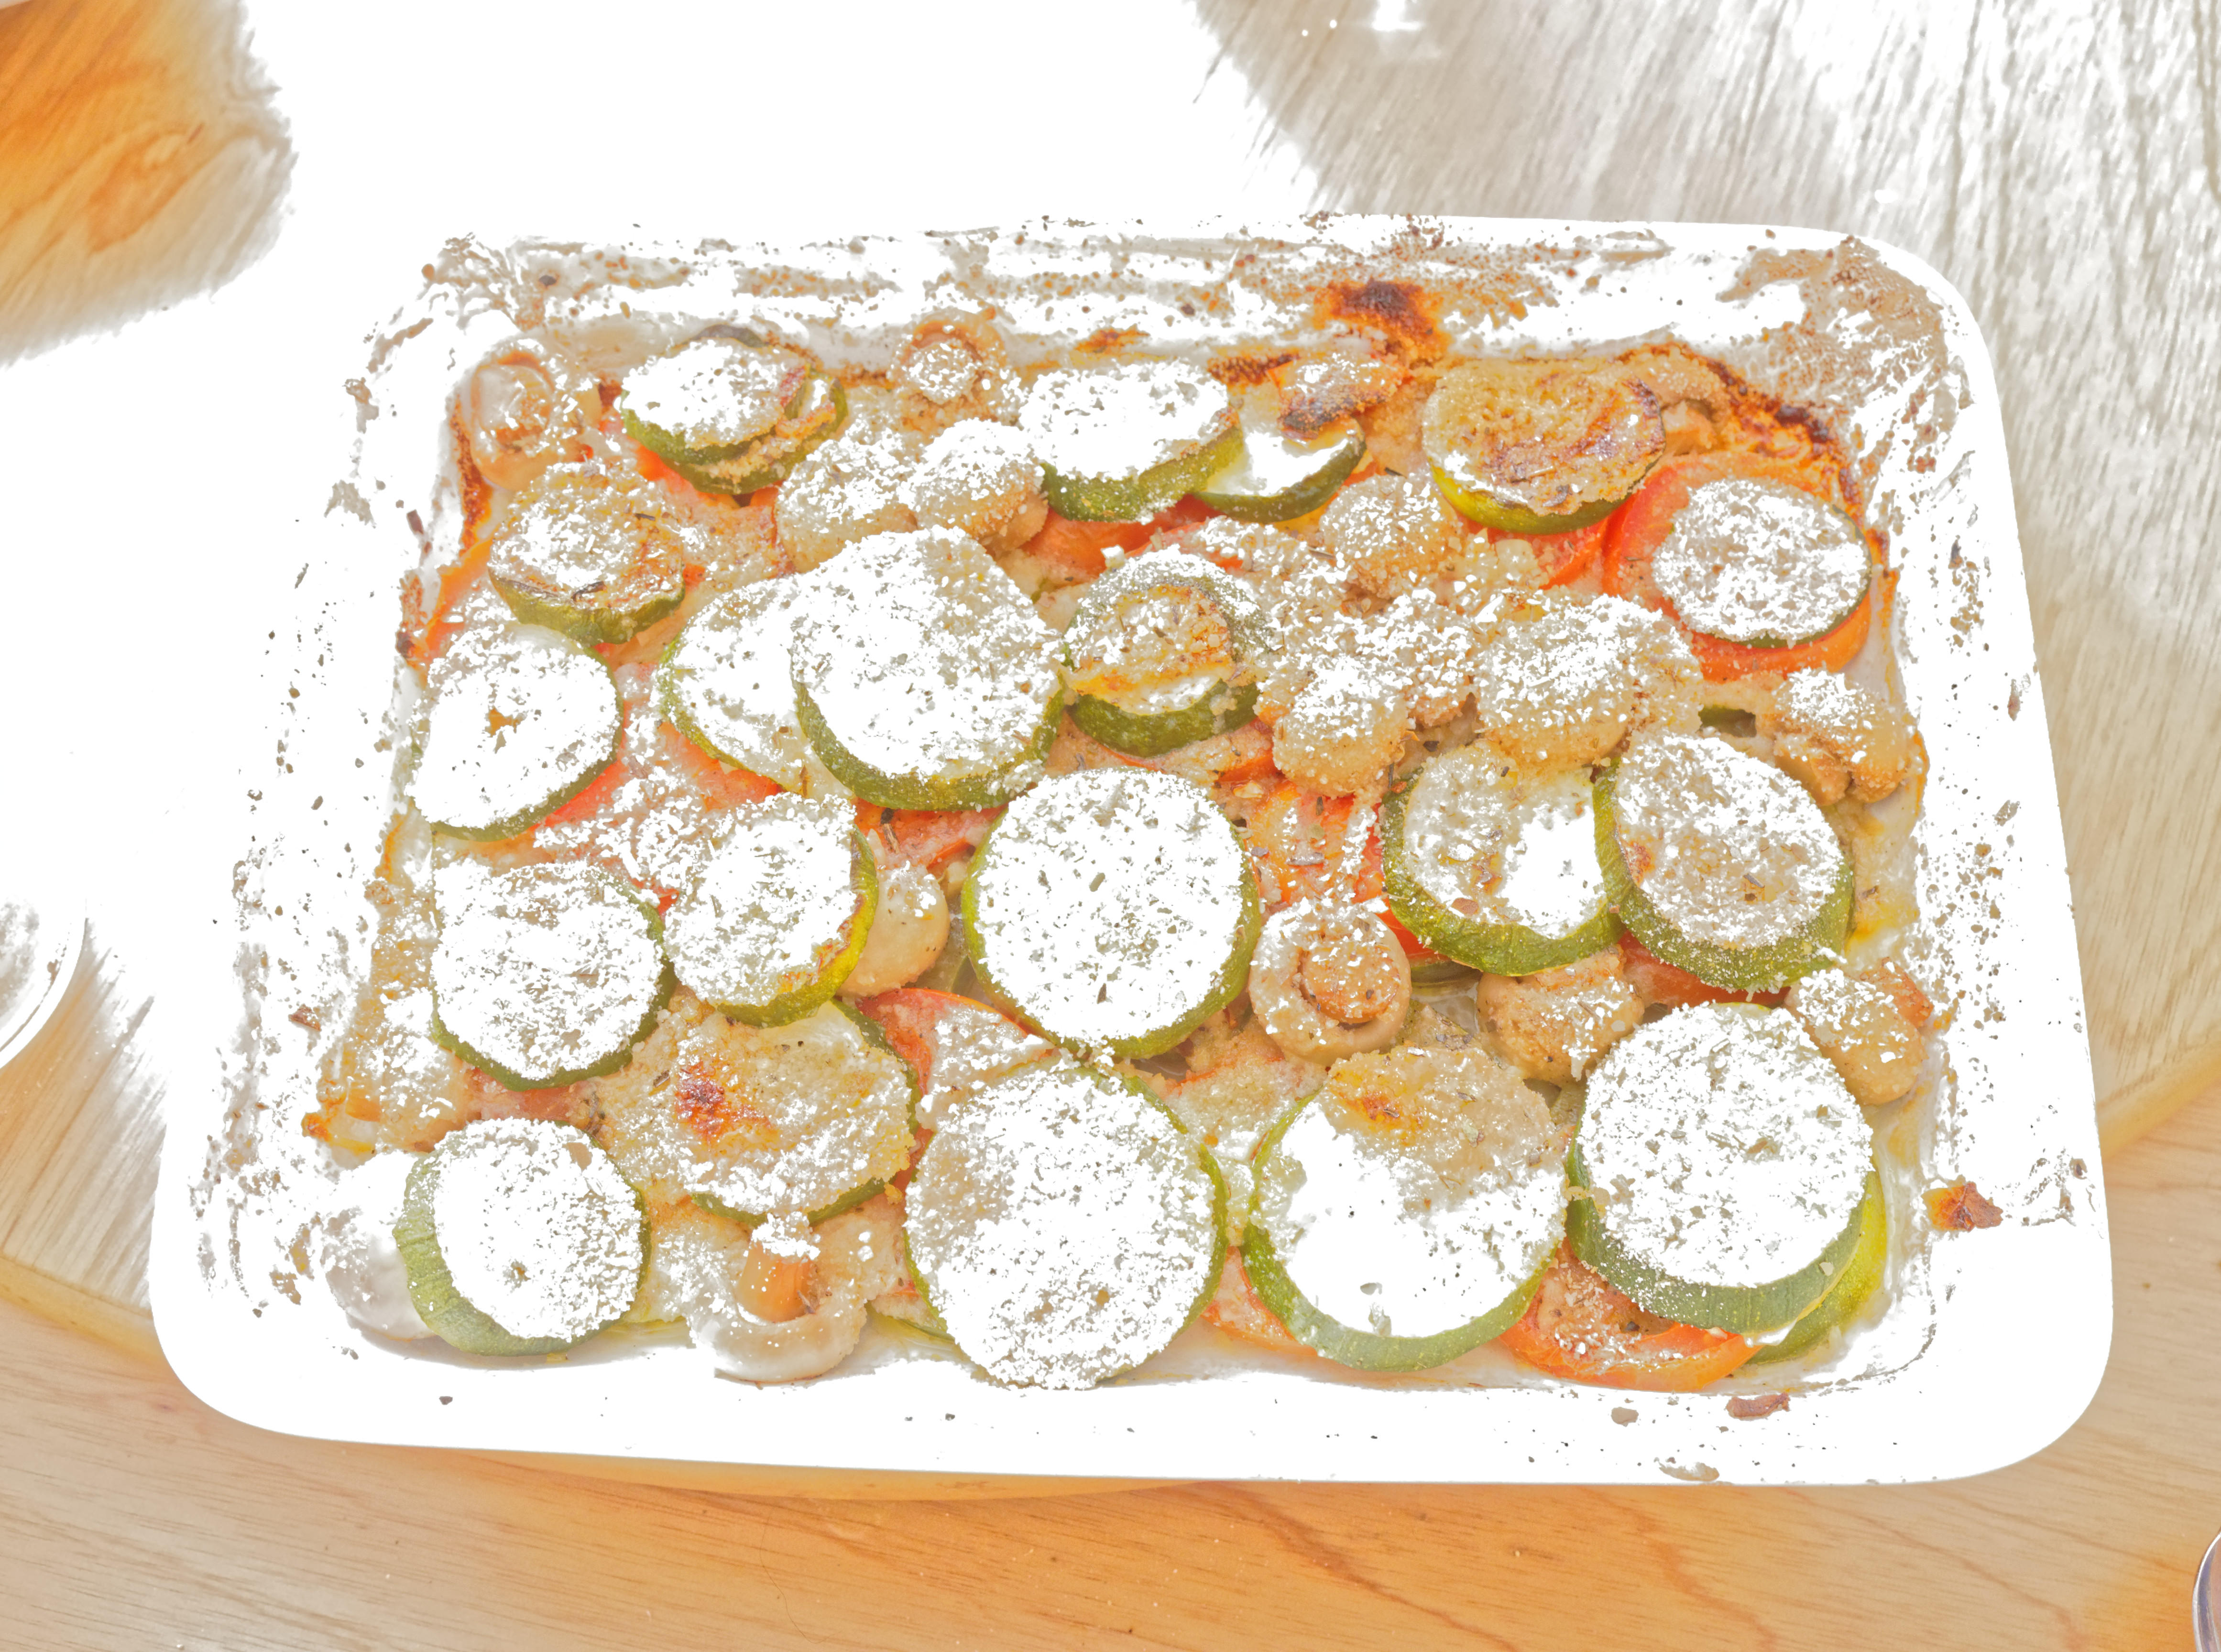 Courgettes-tomatoes-1.jpeg